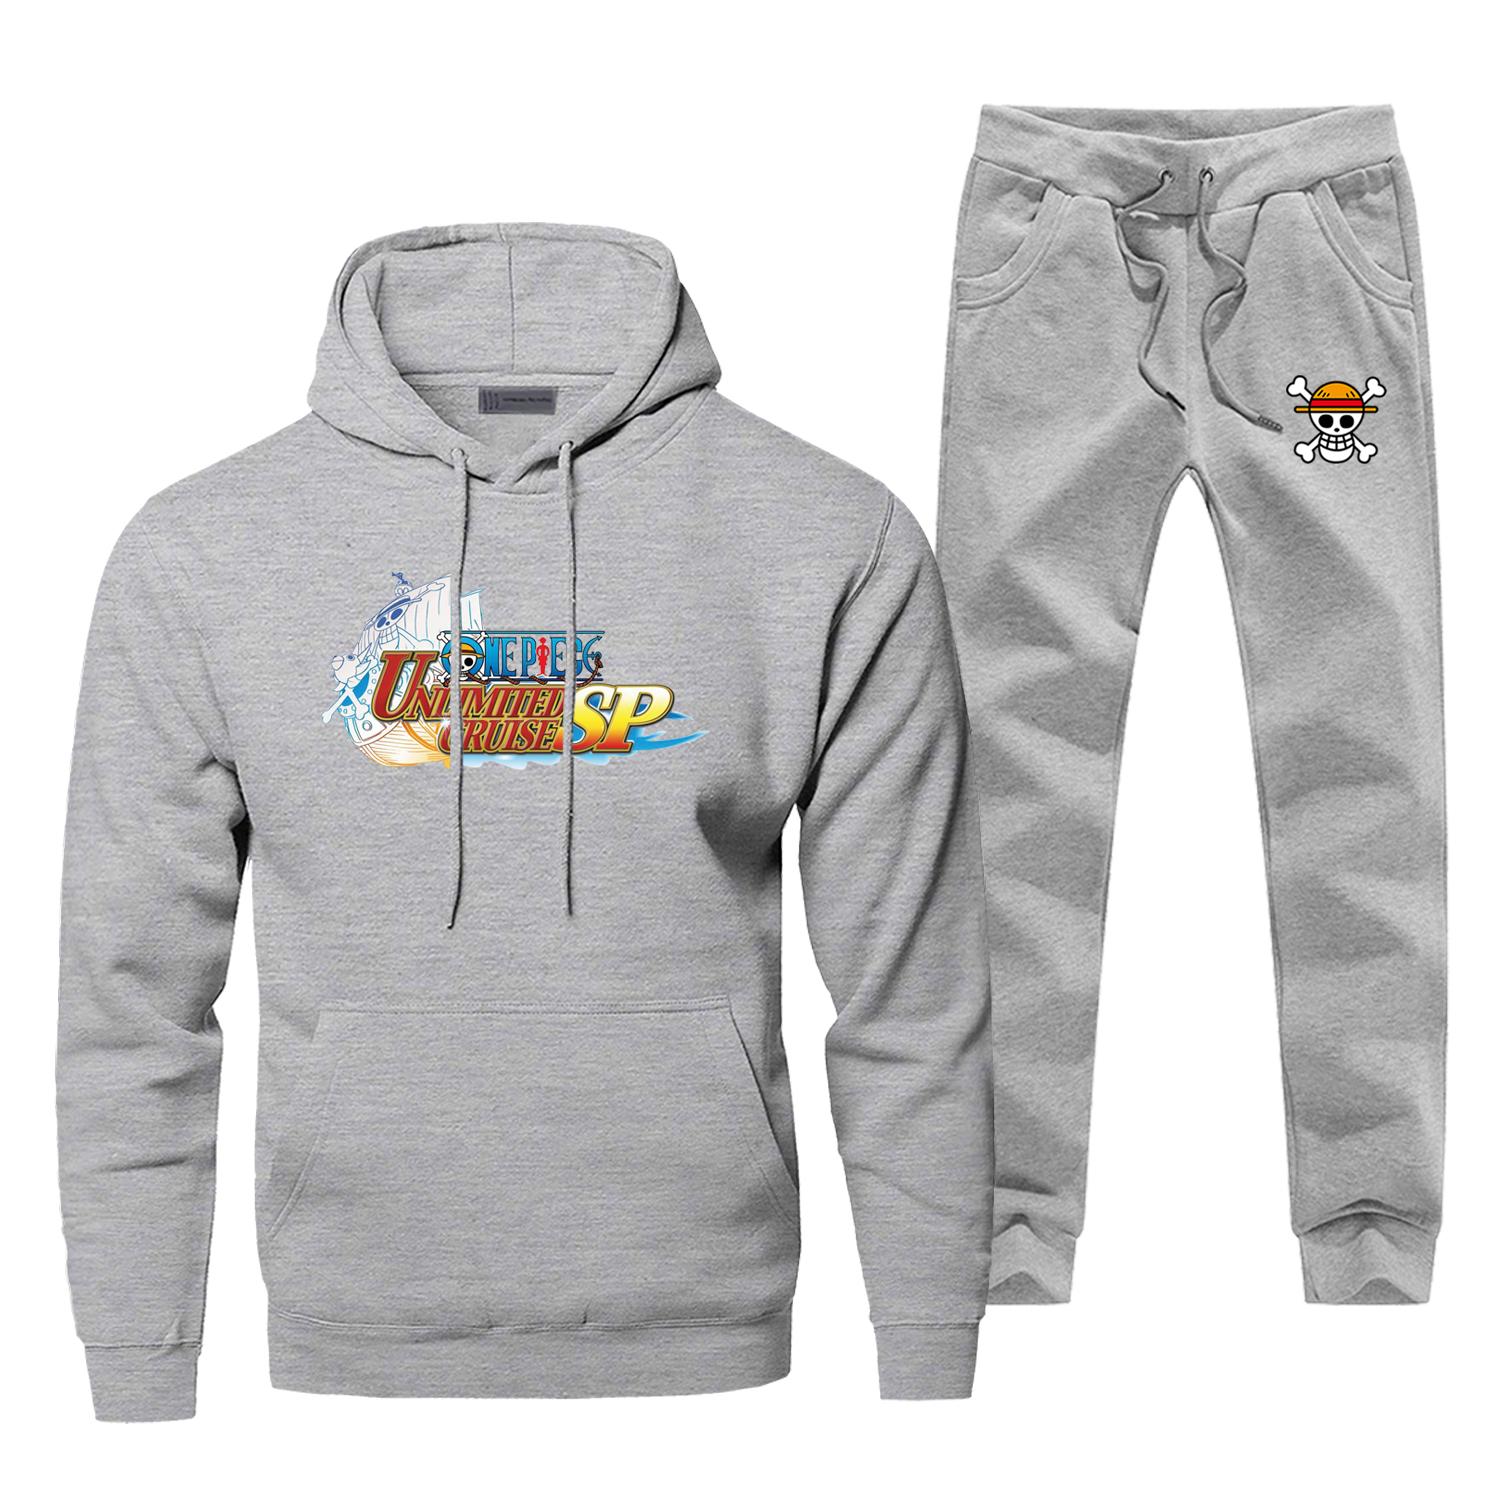 One Piece Unlimited Cruise Sp Complete Man Tracksuit Vidio Game Japan Anime Thermo Underwear Harajuku Hip Hop Chandal Hombre